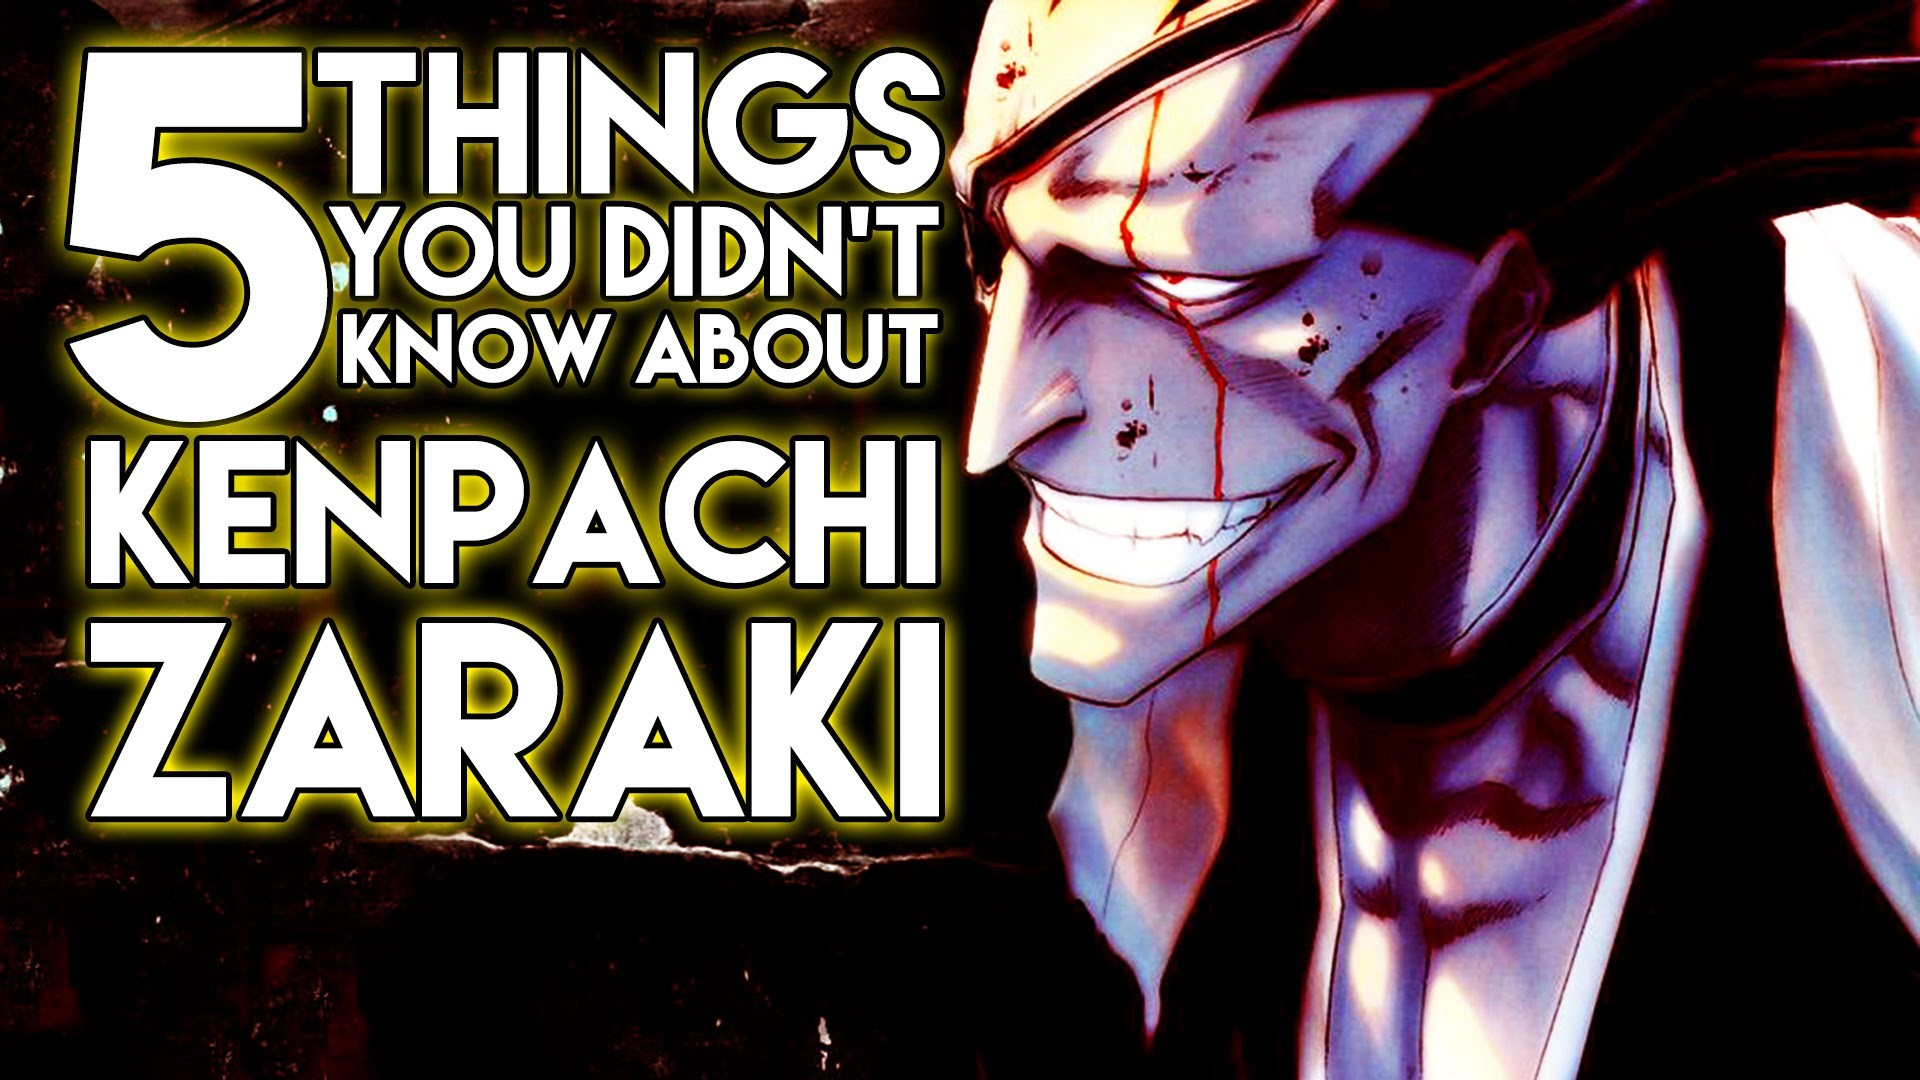 1920x1080 5 Things You Probably Didn't Know About Kenpachi Zaraki (5 Facts) | Bleach  | The Week Of 5's #1 - YouTube